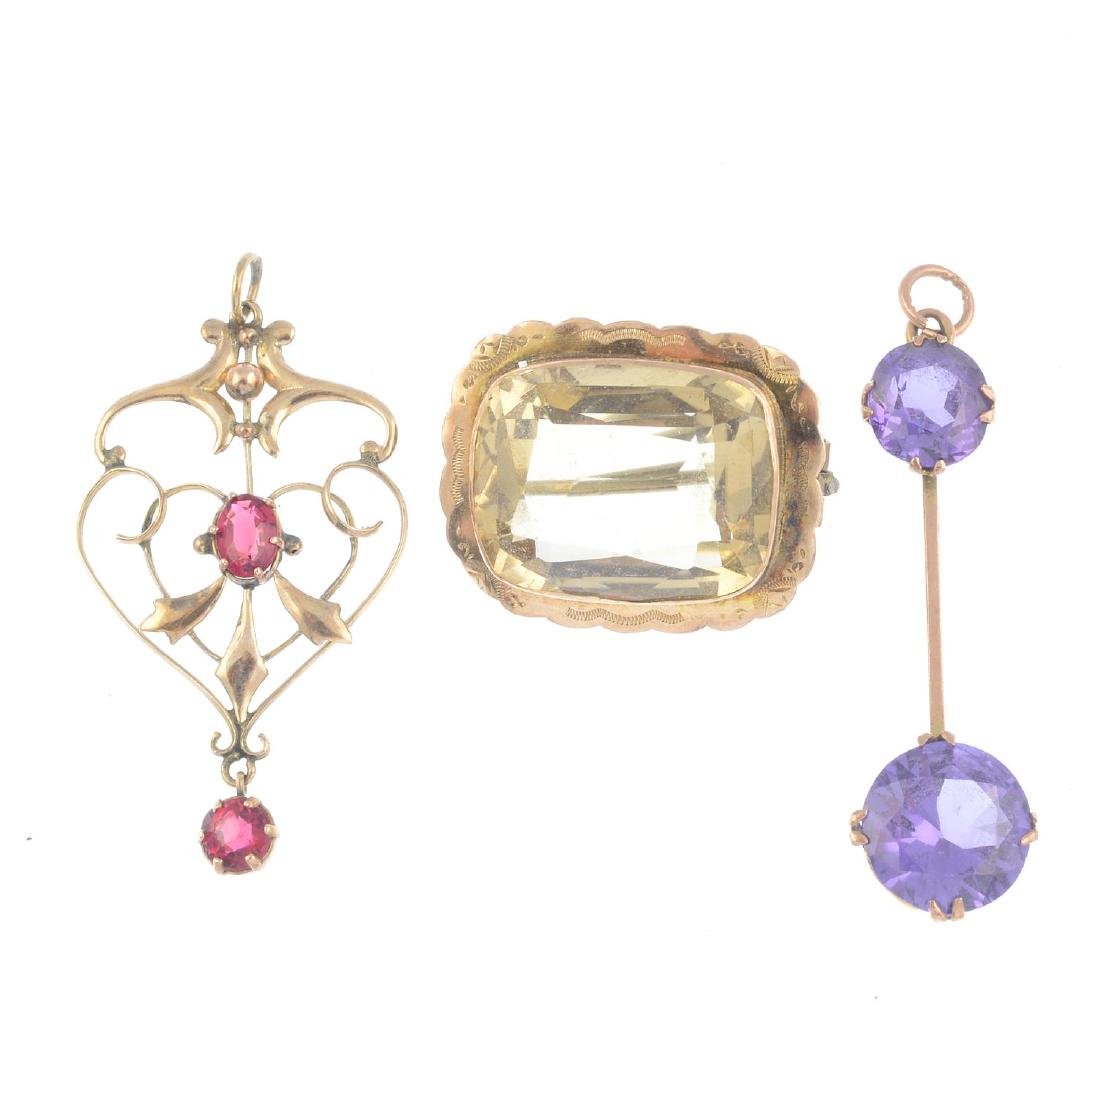 Three gem-set pendants and a brooch. To include a